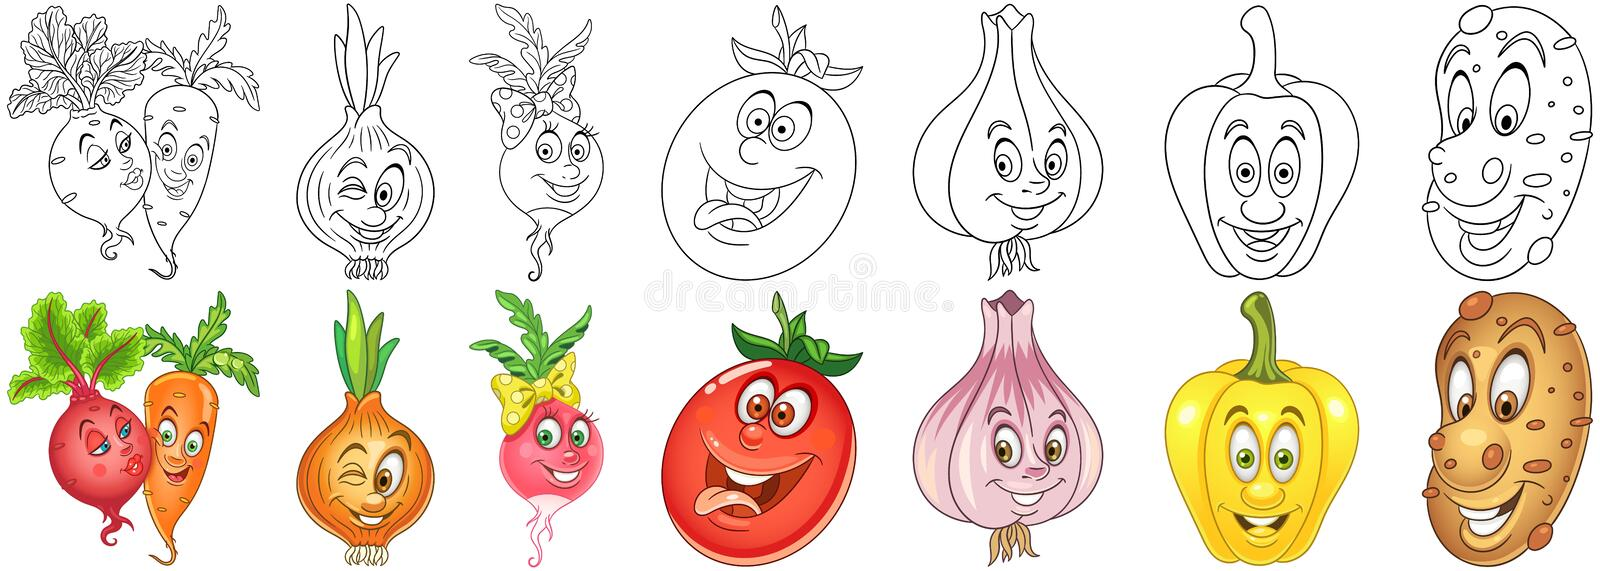 Cartoon Vegetables set royalty free stock photo